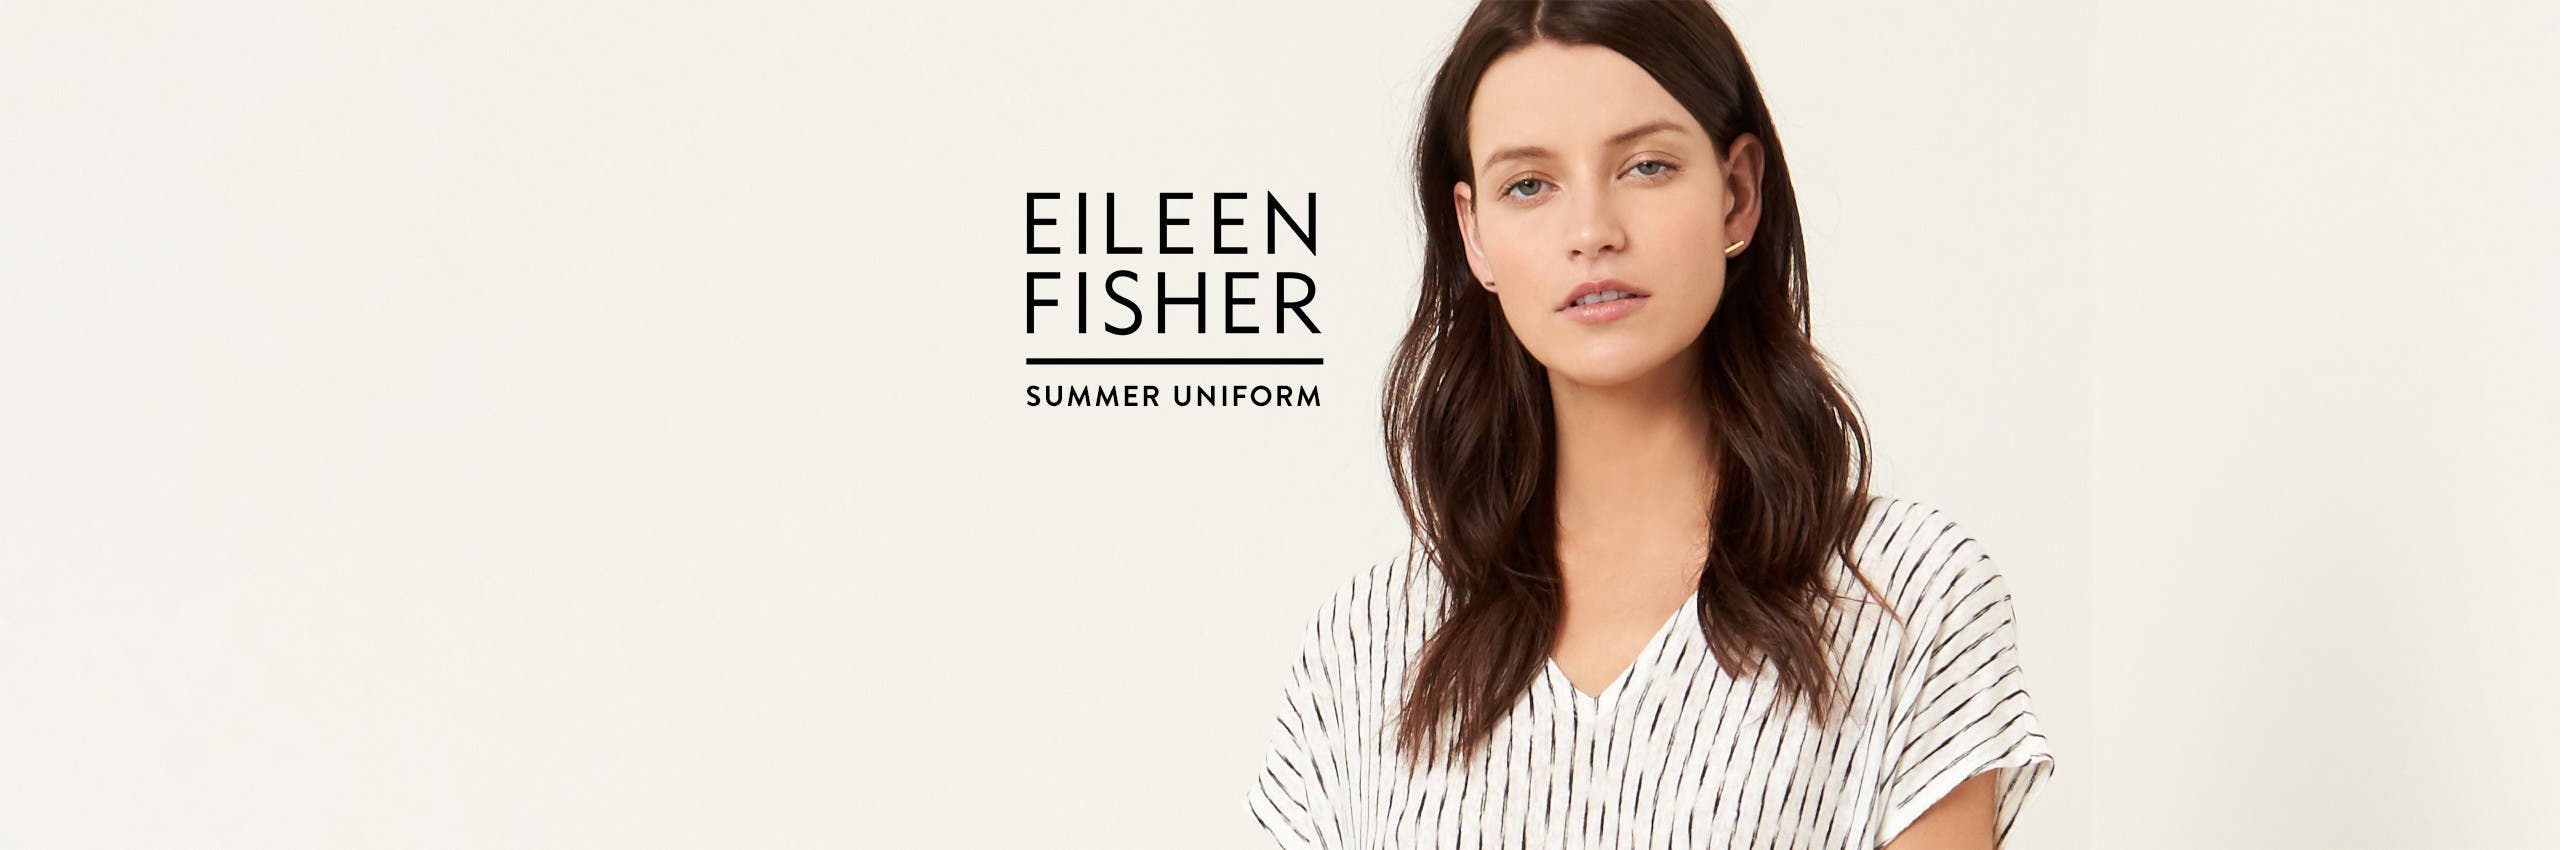 Your Eileen Fisher summer uniform.